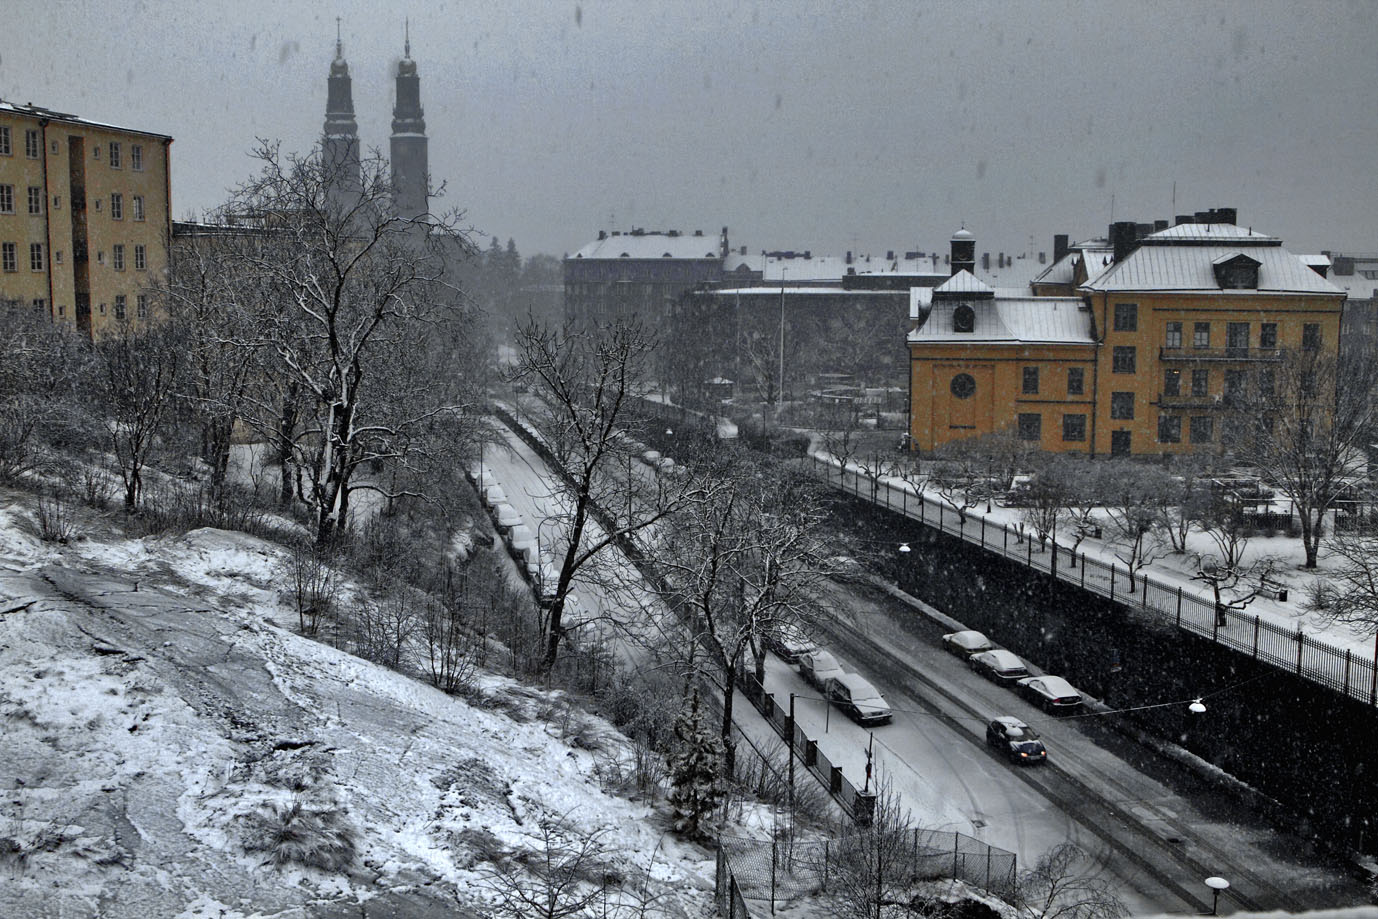 stockholm in the snow - photo #20